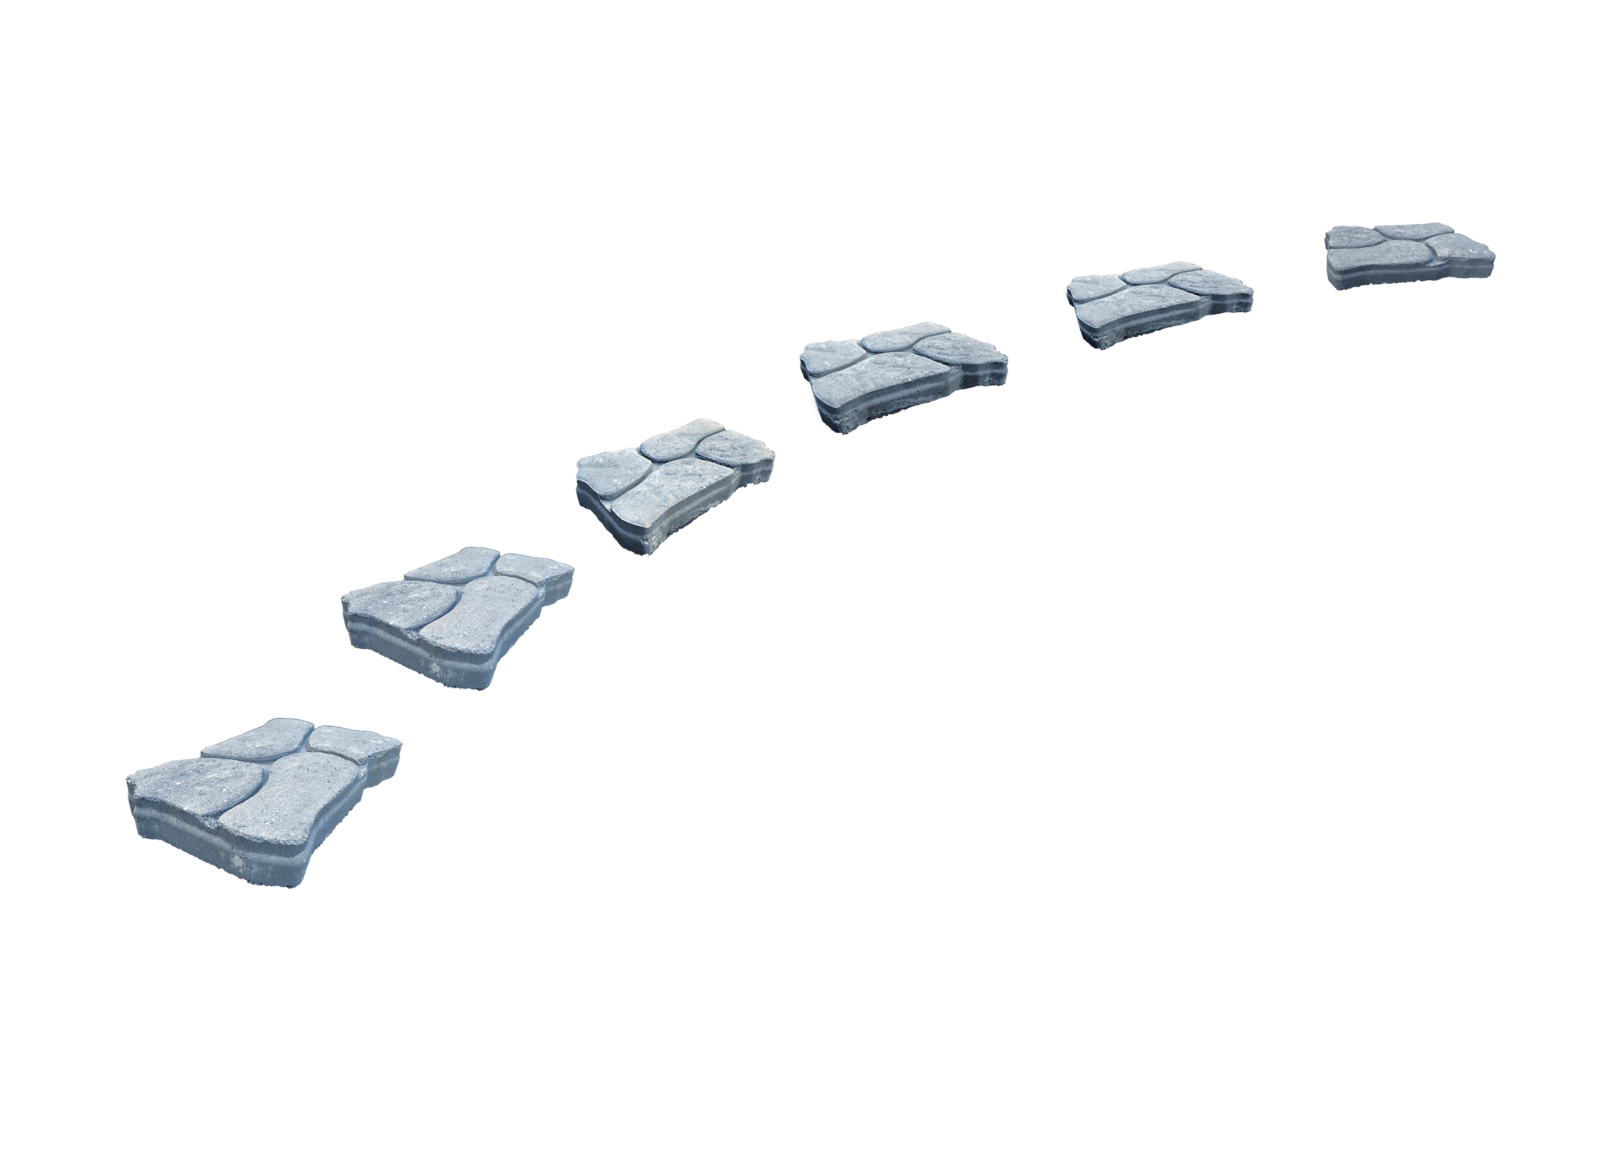 Walkway clipart stepping stone IMGFLASH Path 36720 Path Png